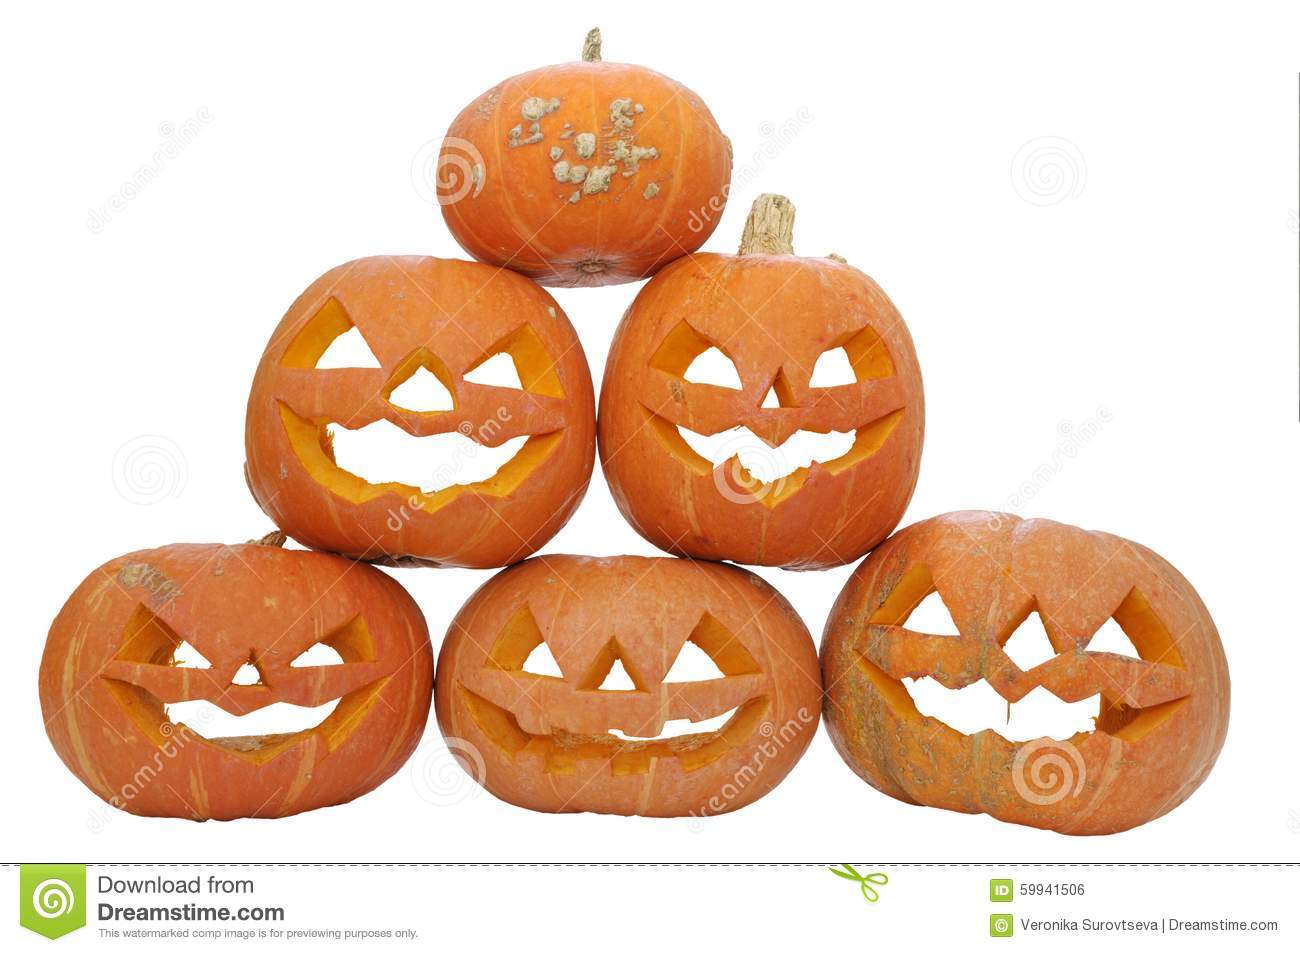 pumpkin pyramid group ripe red pumpkins lanterns masks isolated white background